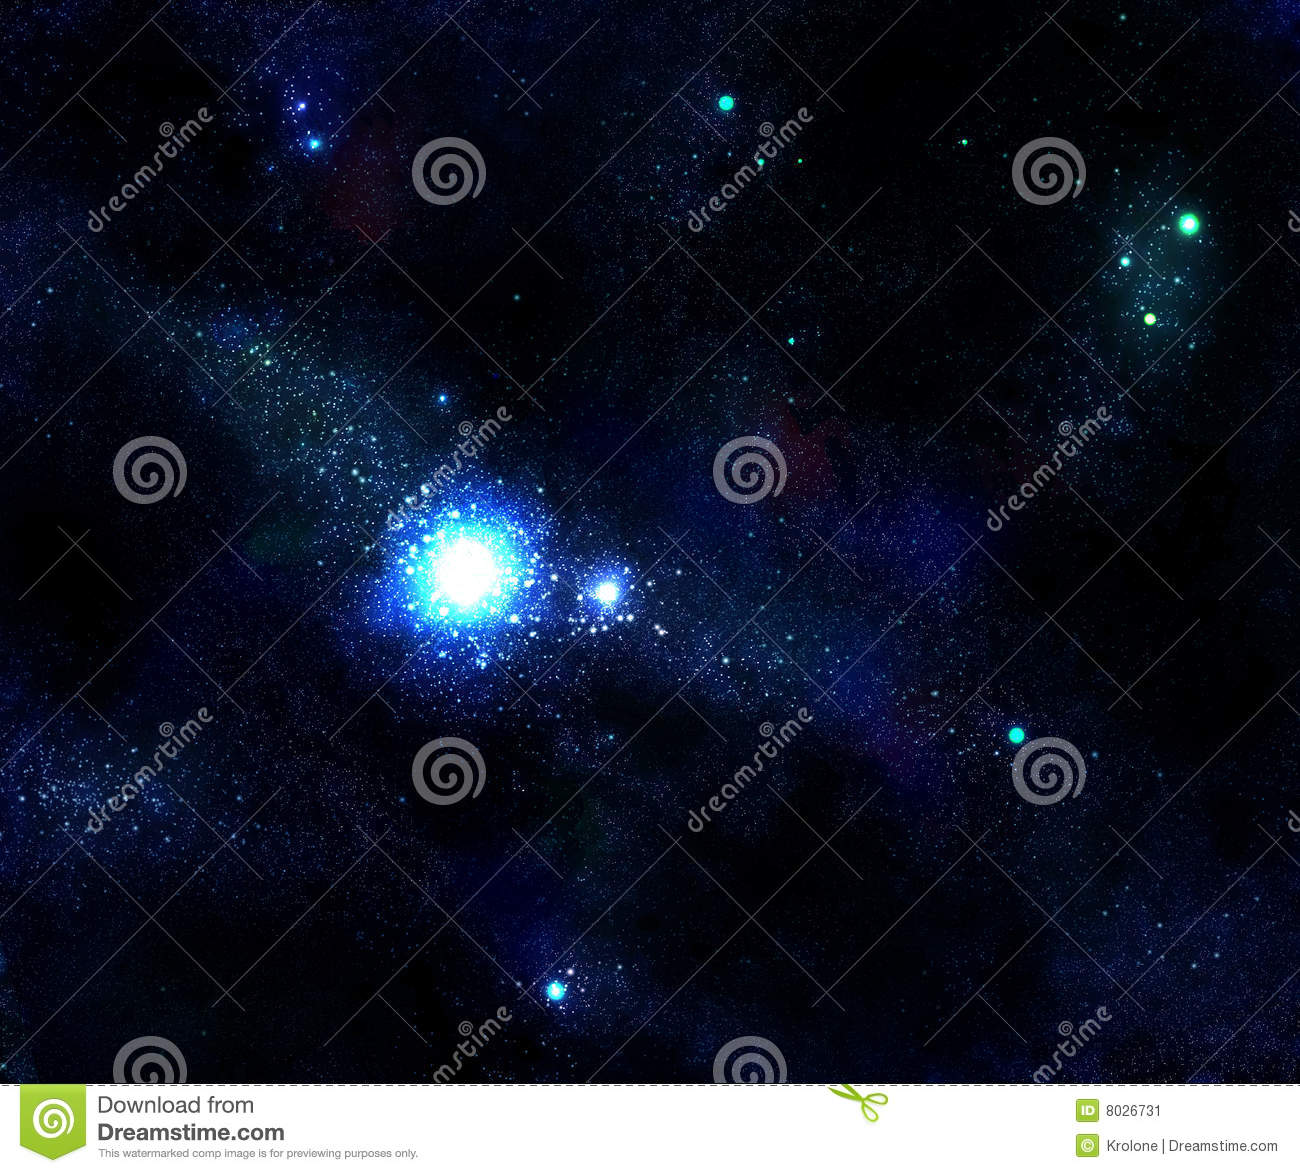 Light Star And Blue Space Galaxy Stock Image - Image: 8026731